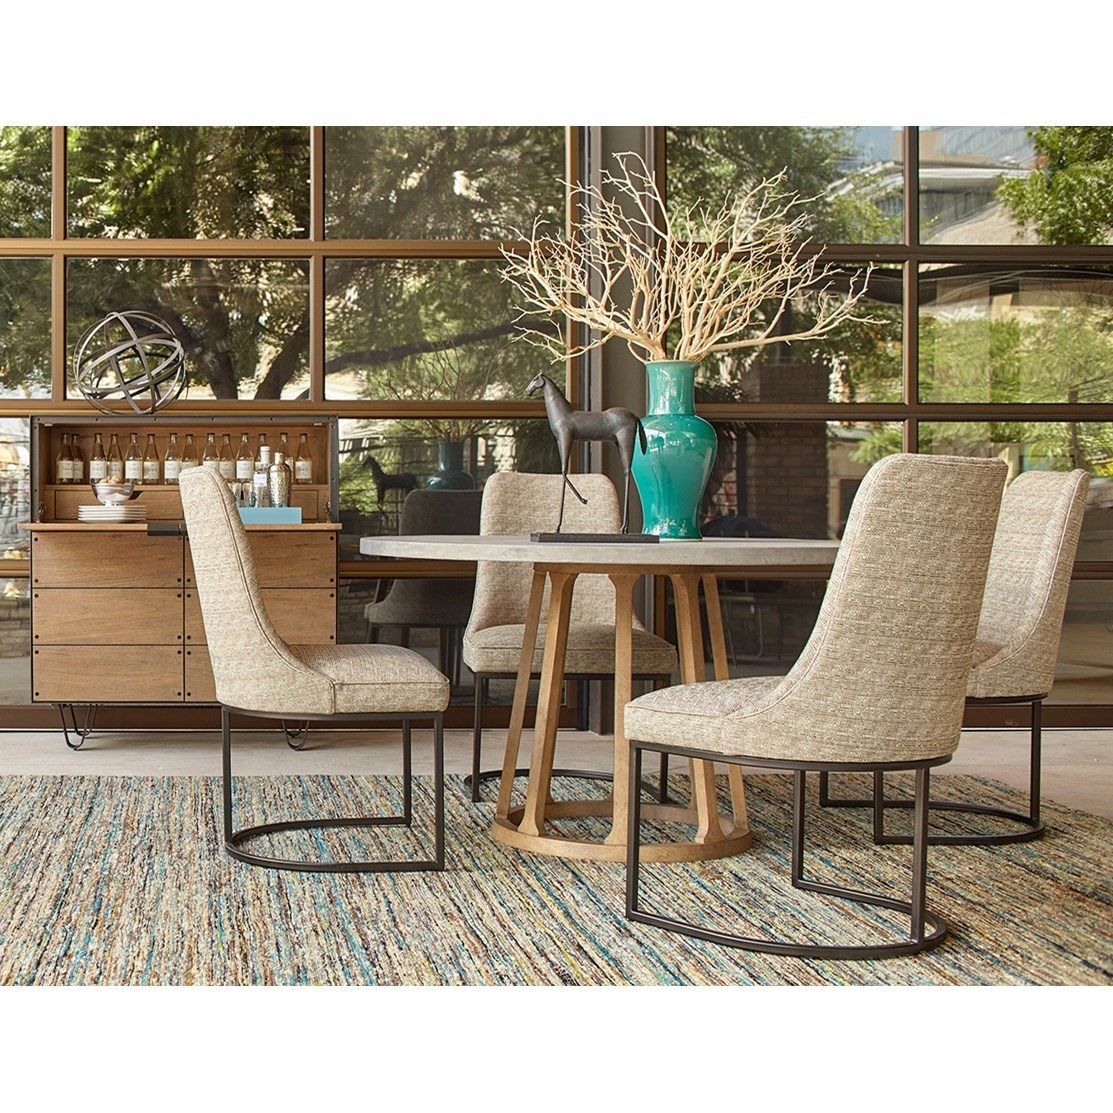 Belfort Signature Rainey Street Casual Dining Room Group - Item Number: 235000-1501 Dining Room Group 3